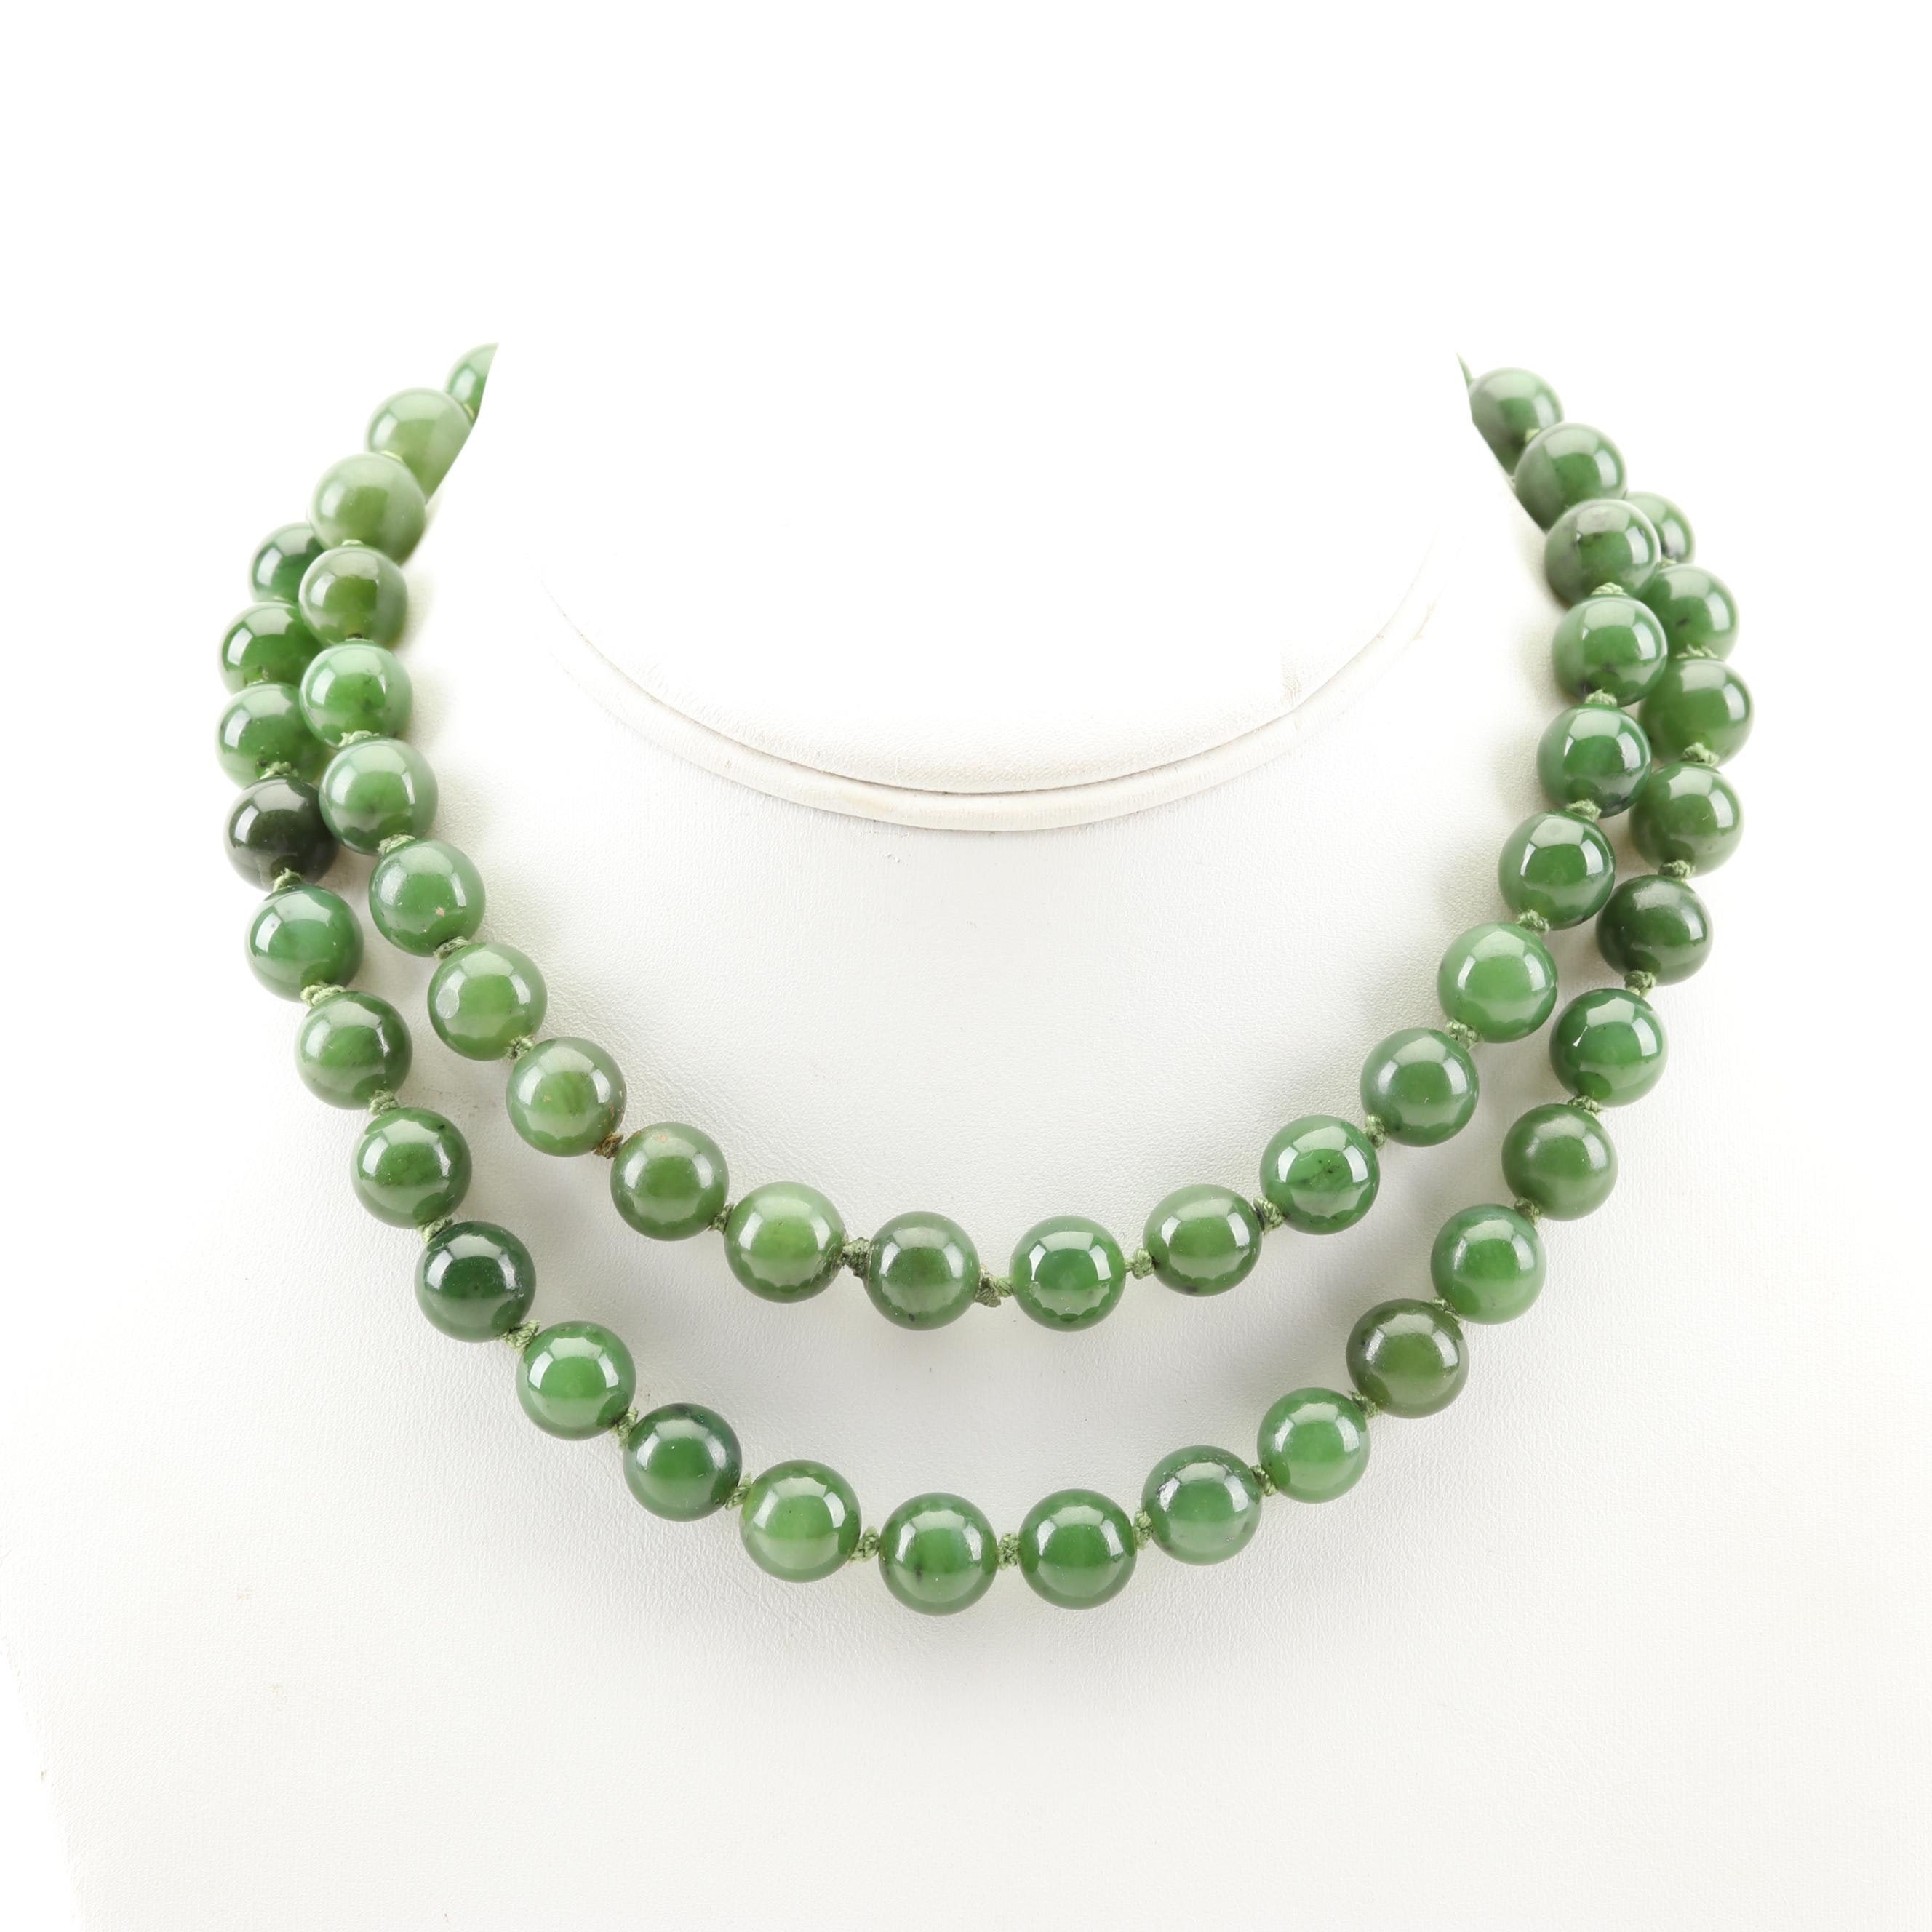 Hand Knotted Beaded Nephrite Necklace